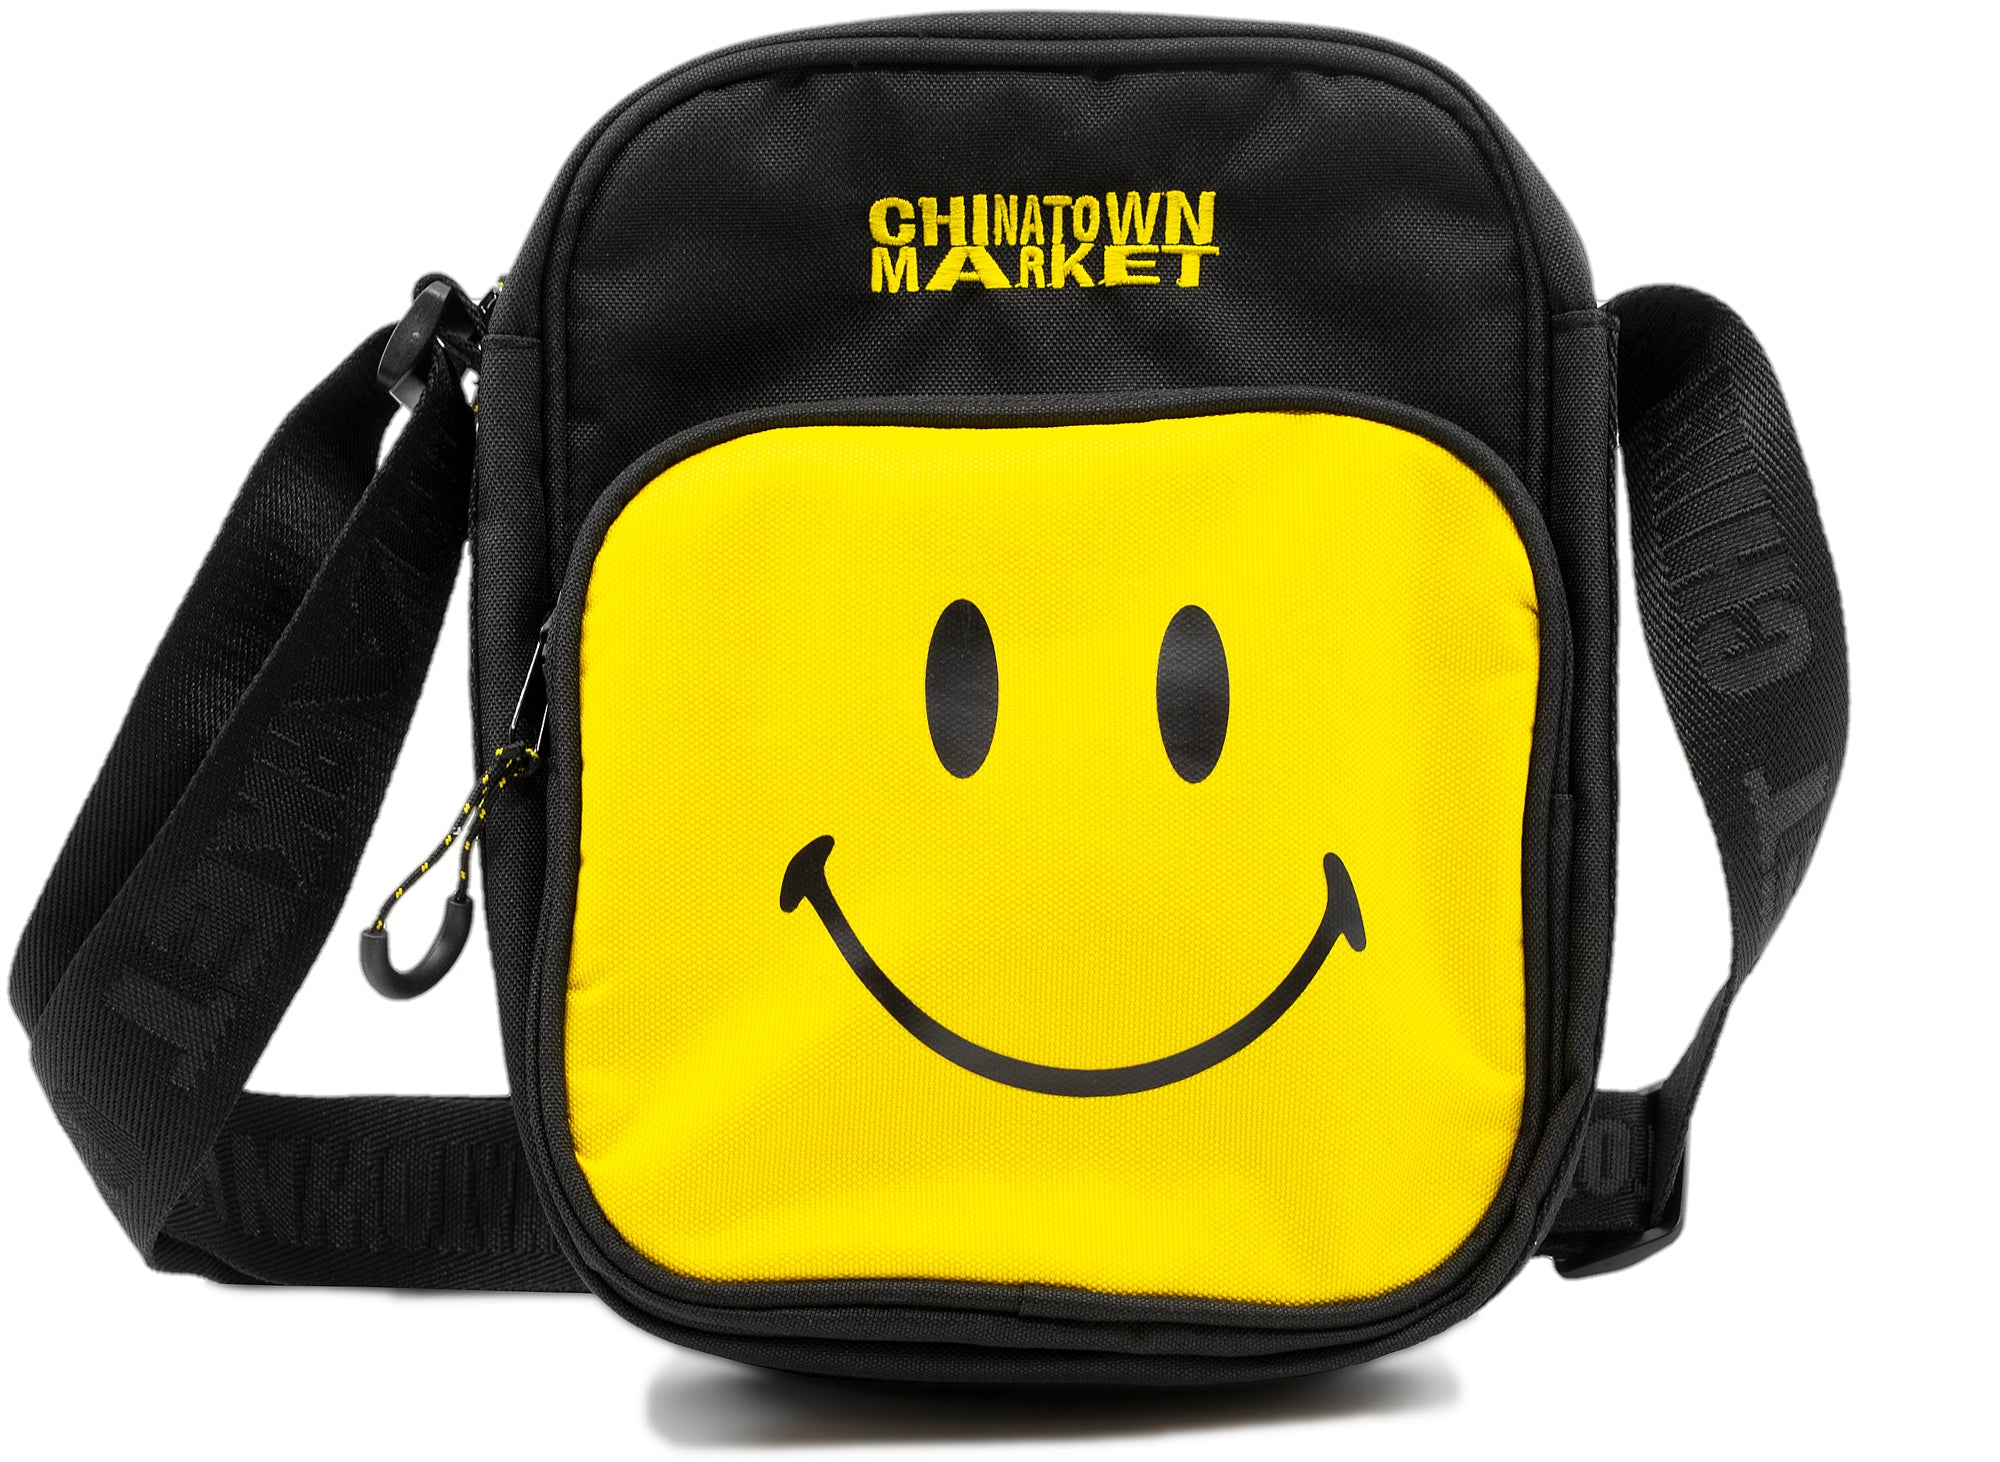 Chinatown Market Smiley Camera Bag xld